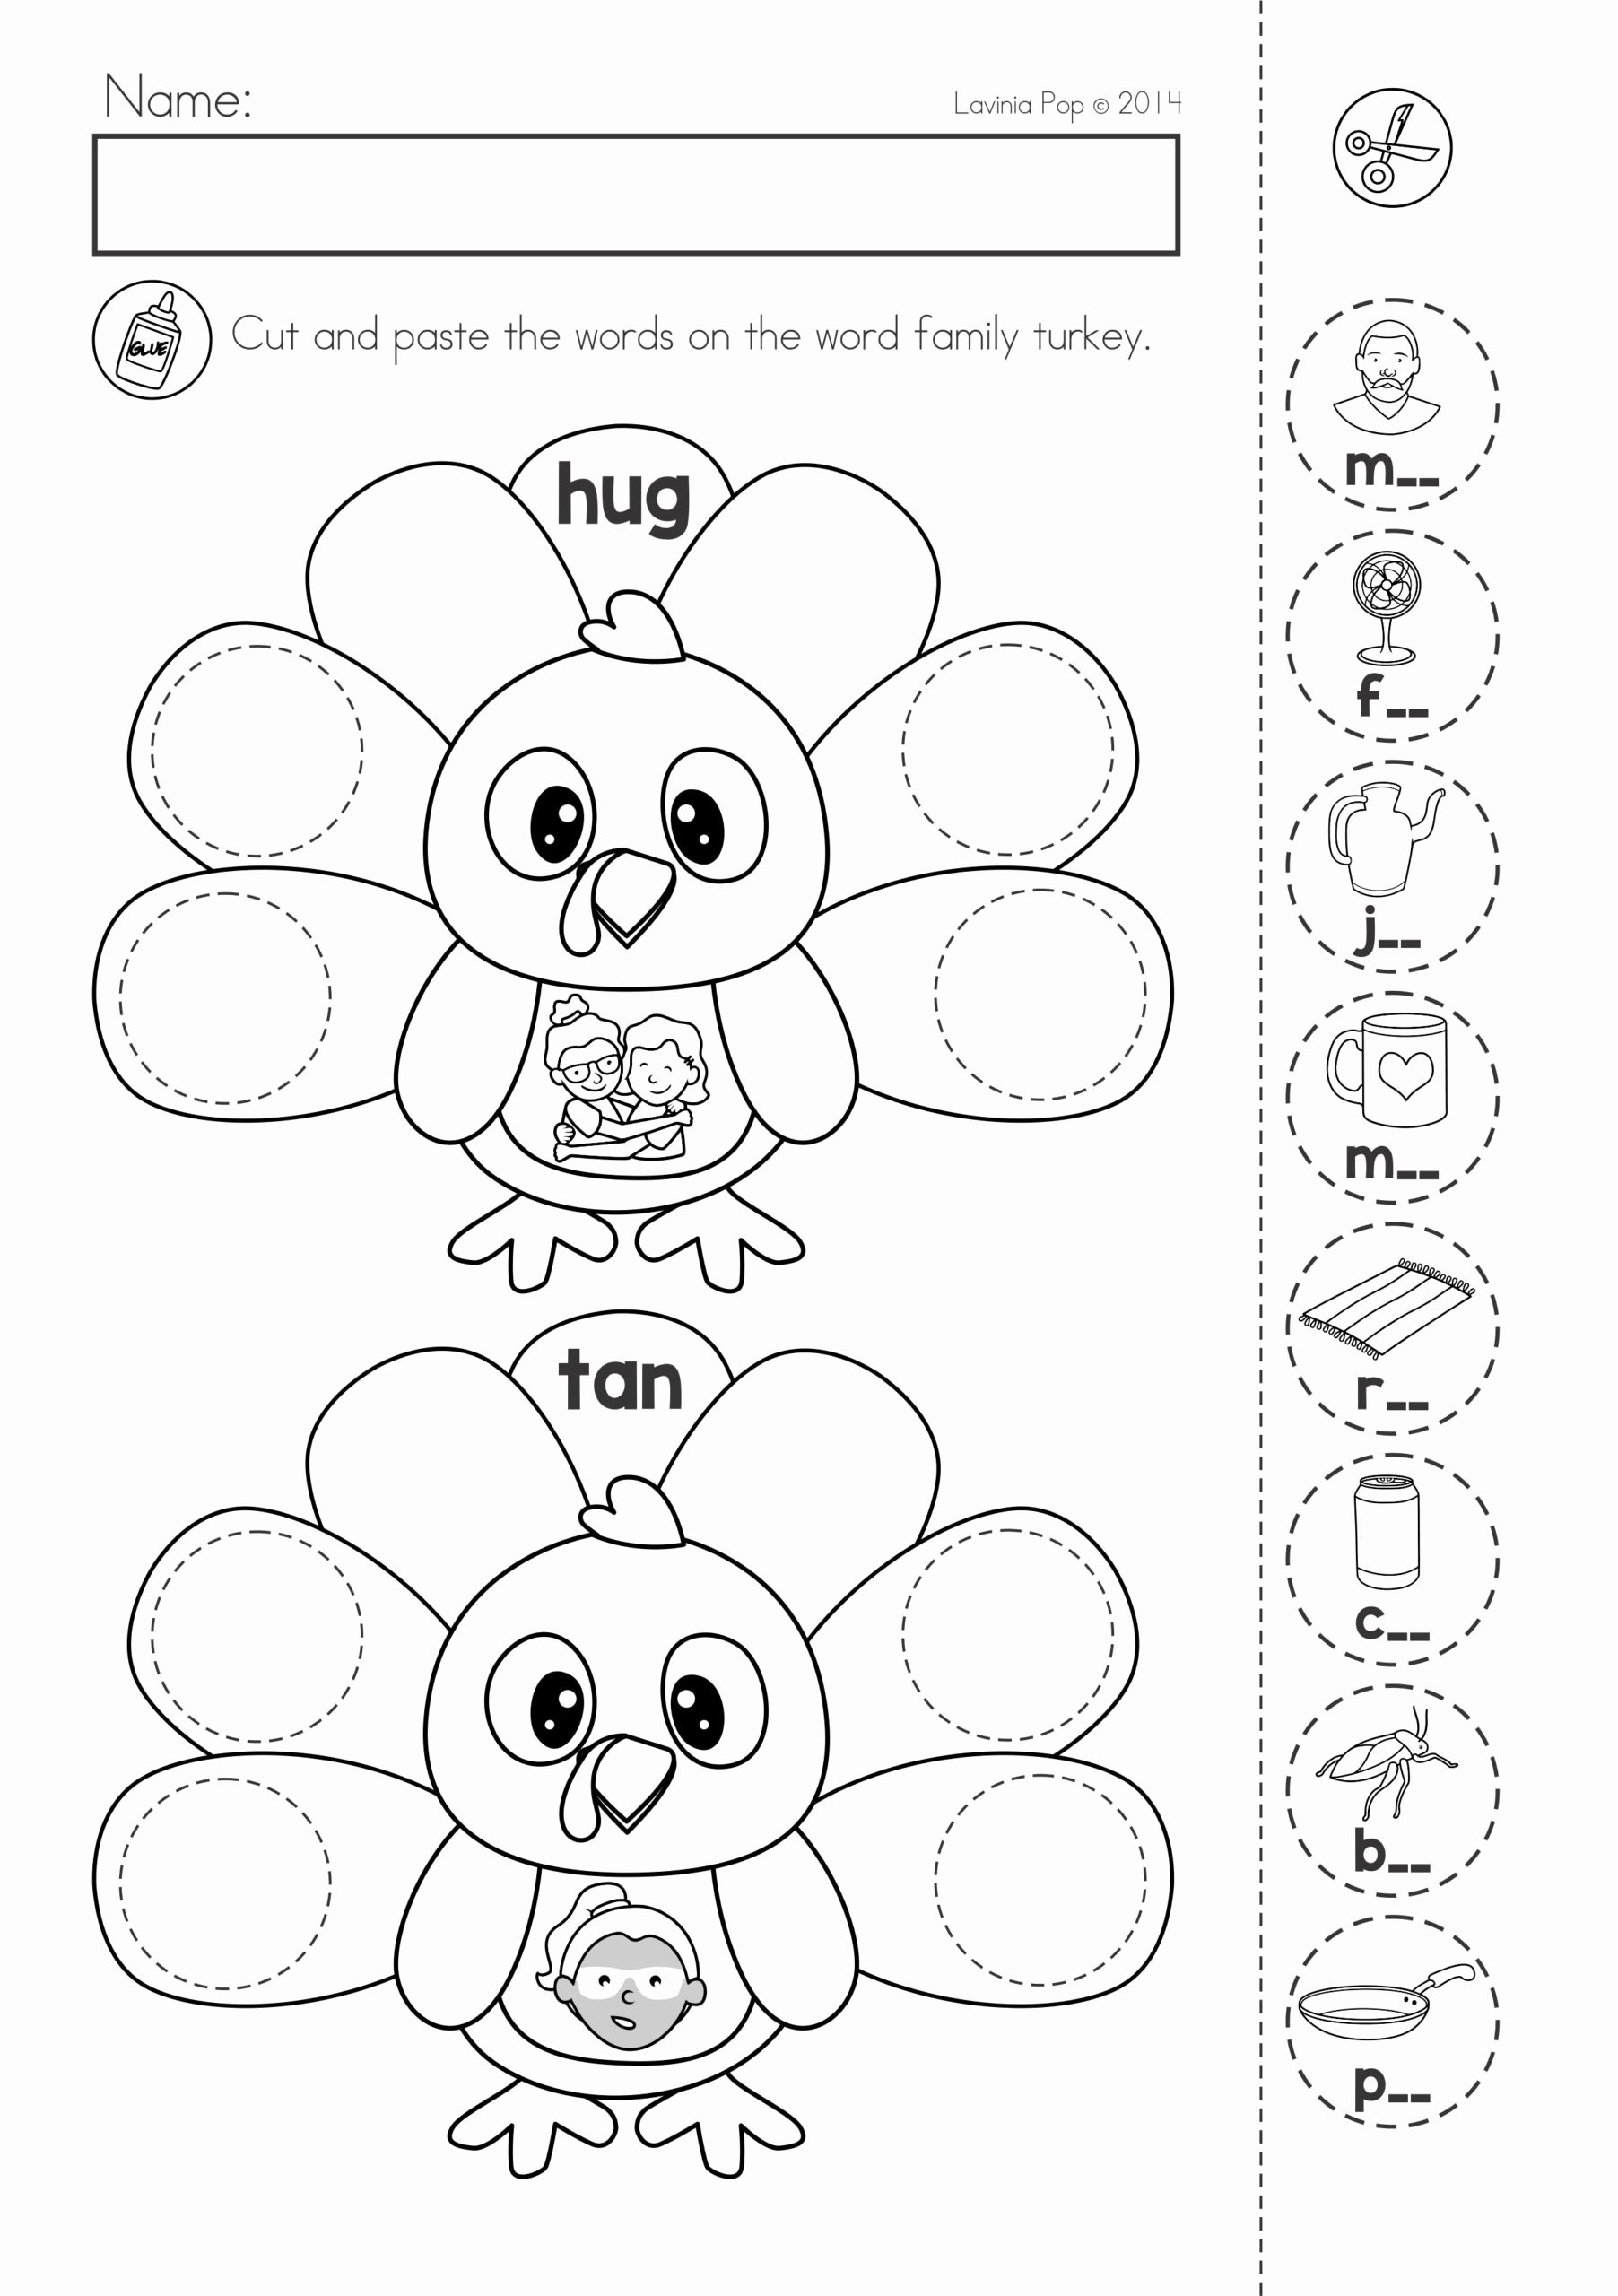 Chess Worksheets for Preschoolers New Thanksgiving Math Literacy Worksheets and Activities